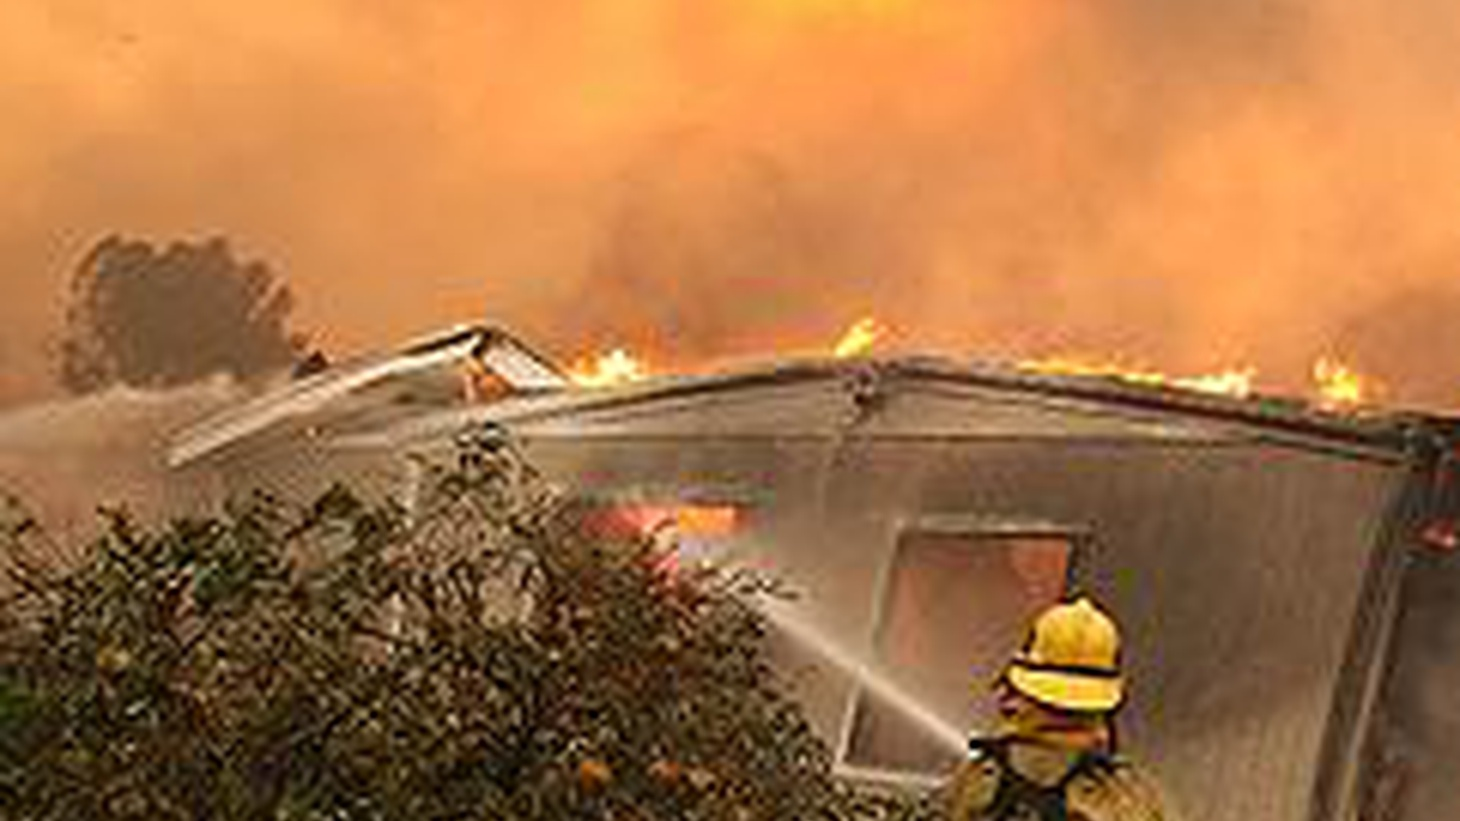 Nobody had to see the flames this weekend to know there were devastating fires in LA, Orange and Santa Barbara Counties. Smoke and ashes spread almost everywhere, from brush, trees and more than 1000 homes. We hear about the fires themselves and the consequences to public health. Also, California Attorney General Jerry Brown urges the State Supreme Court to take up six cases involving Prop 8 and decide them ASAP.